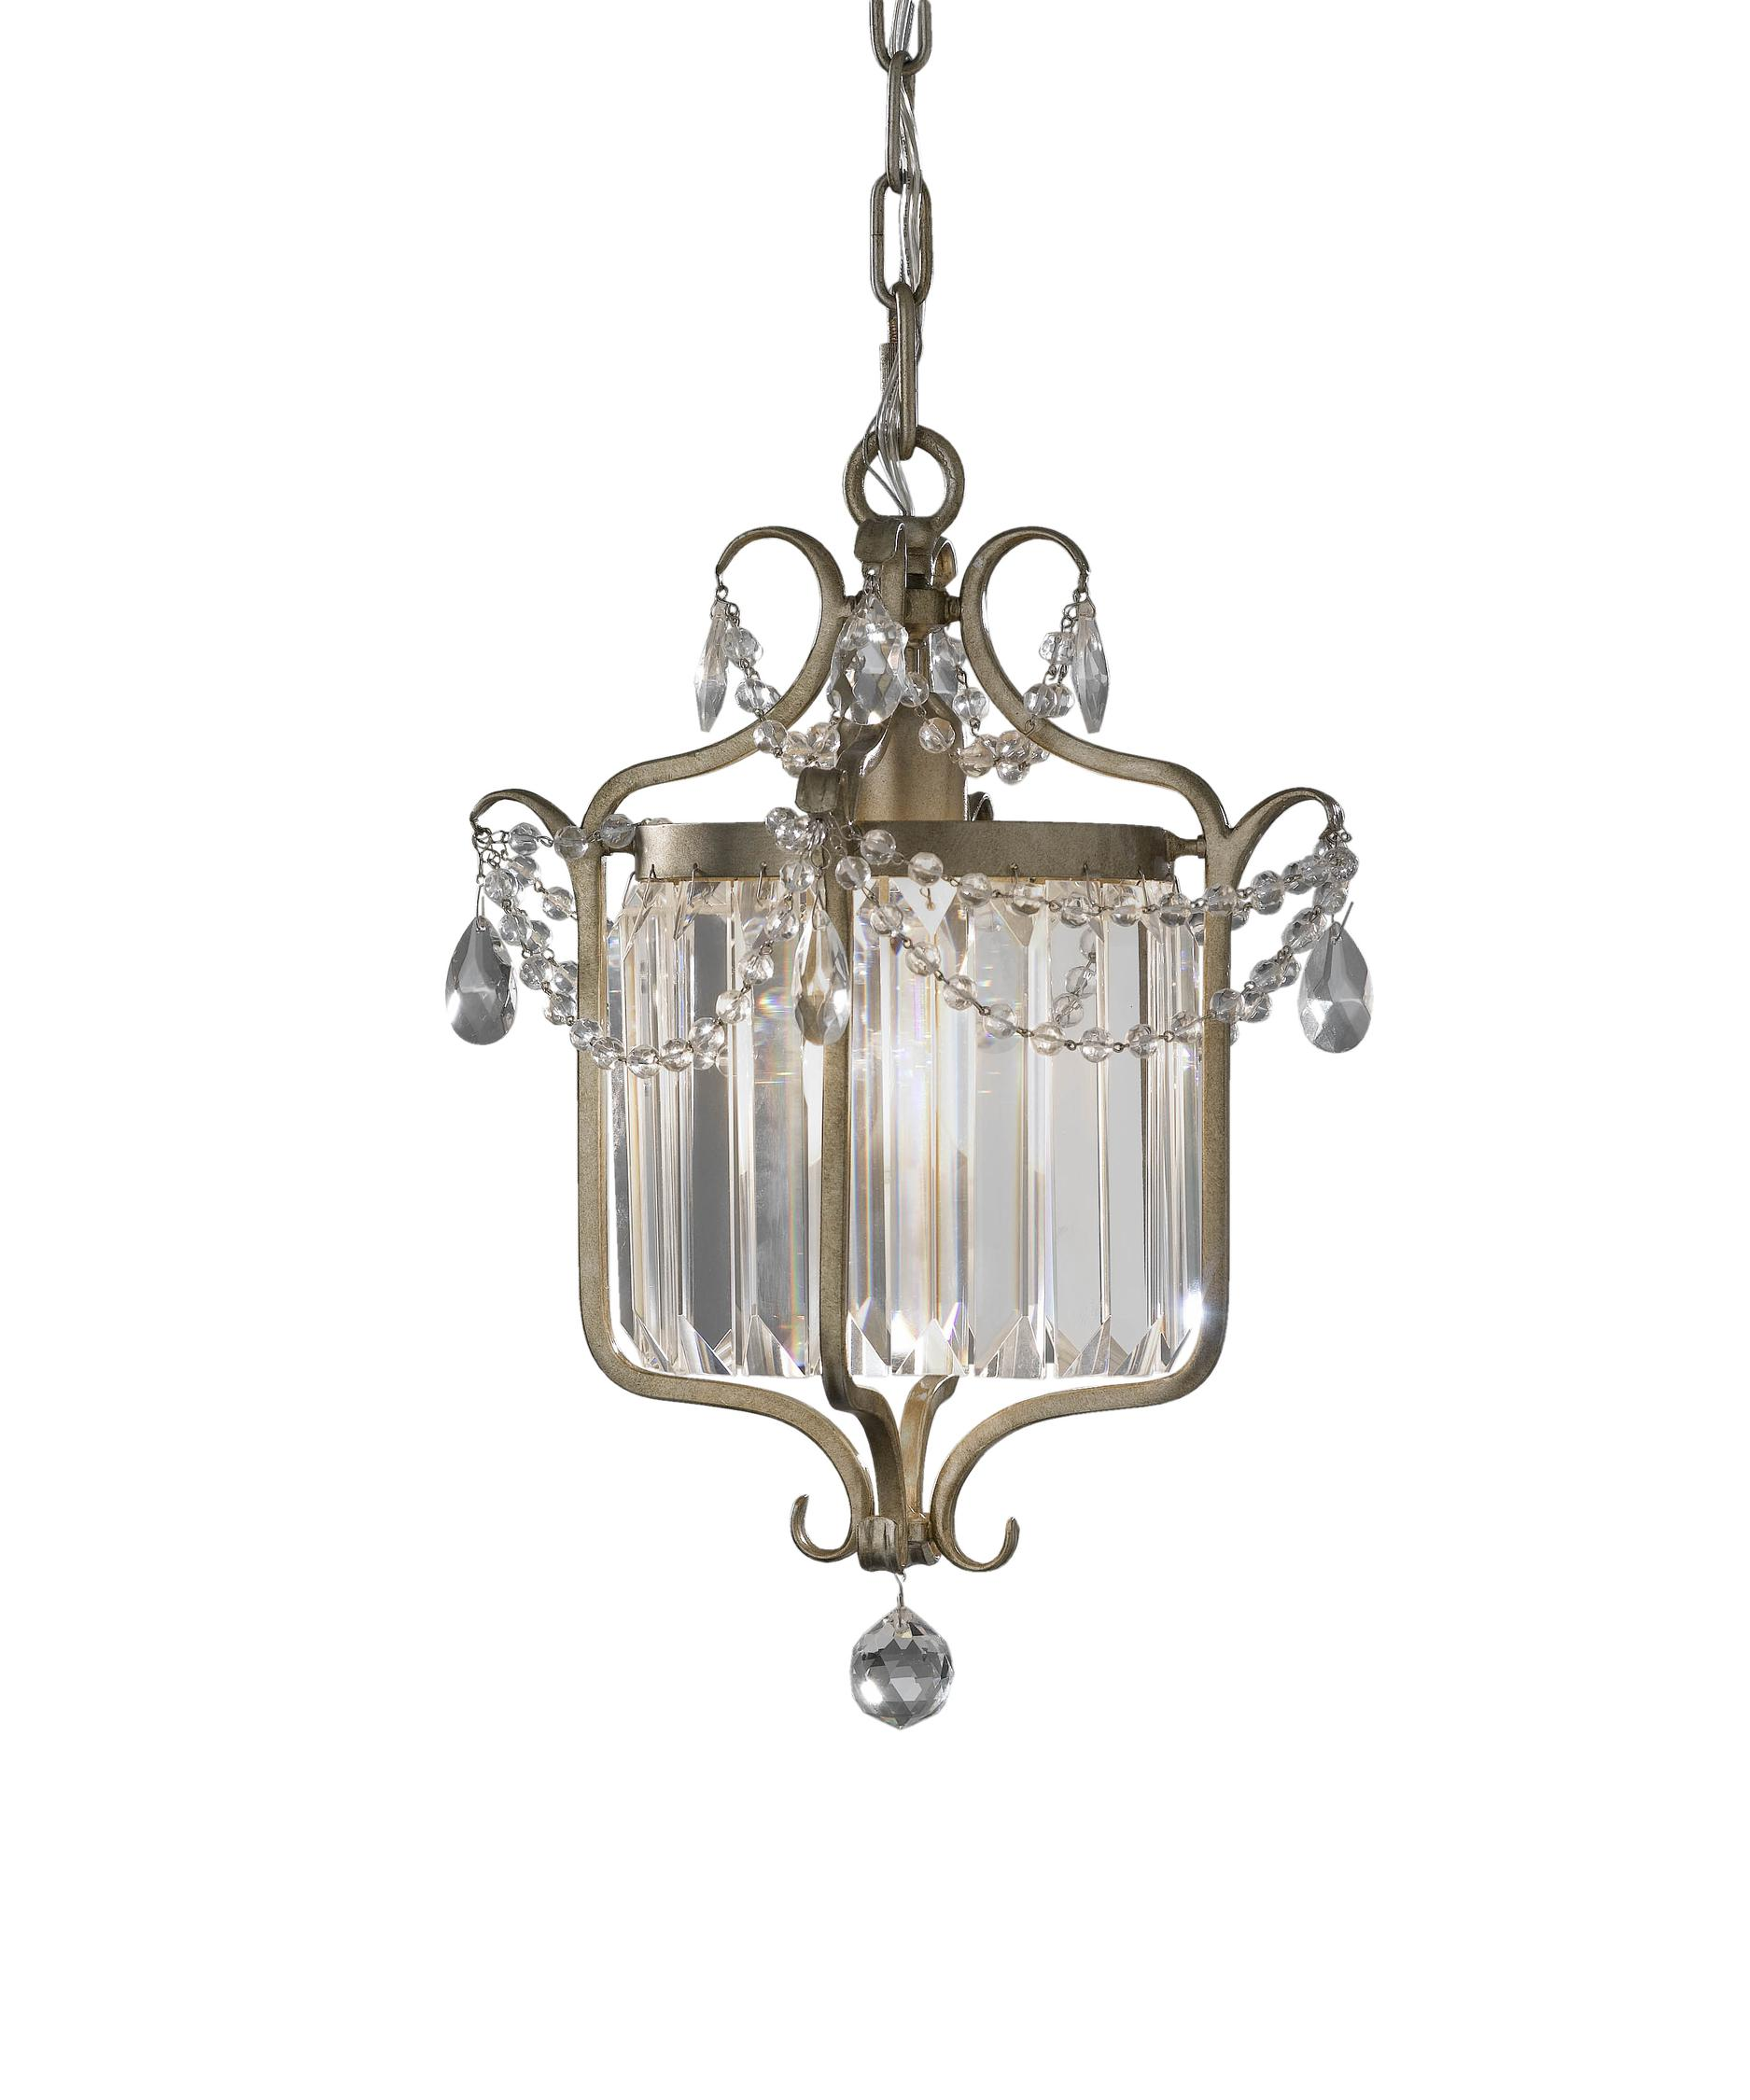 Murray Feiss Gianna 11 Inch Wide Foyer Pendant – Murray Feiss Chandeliers